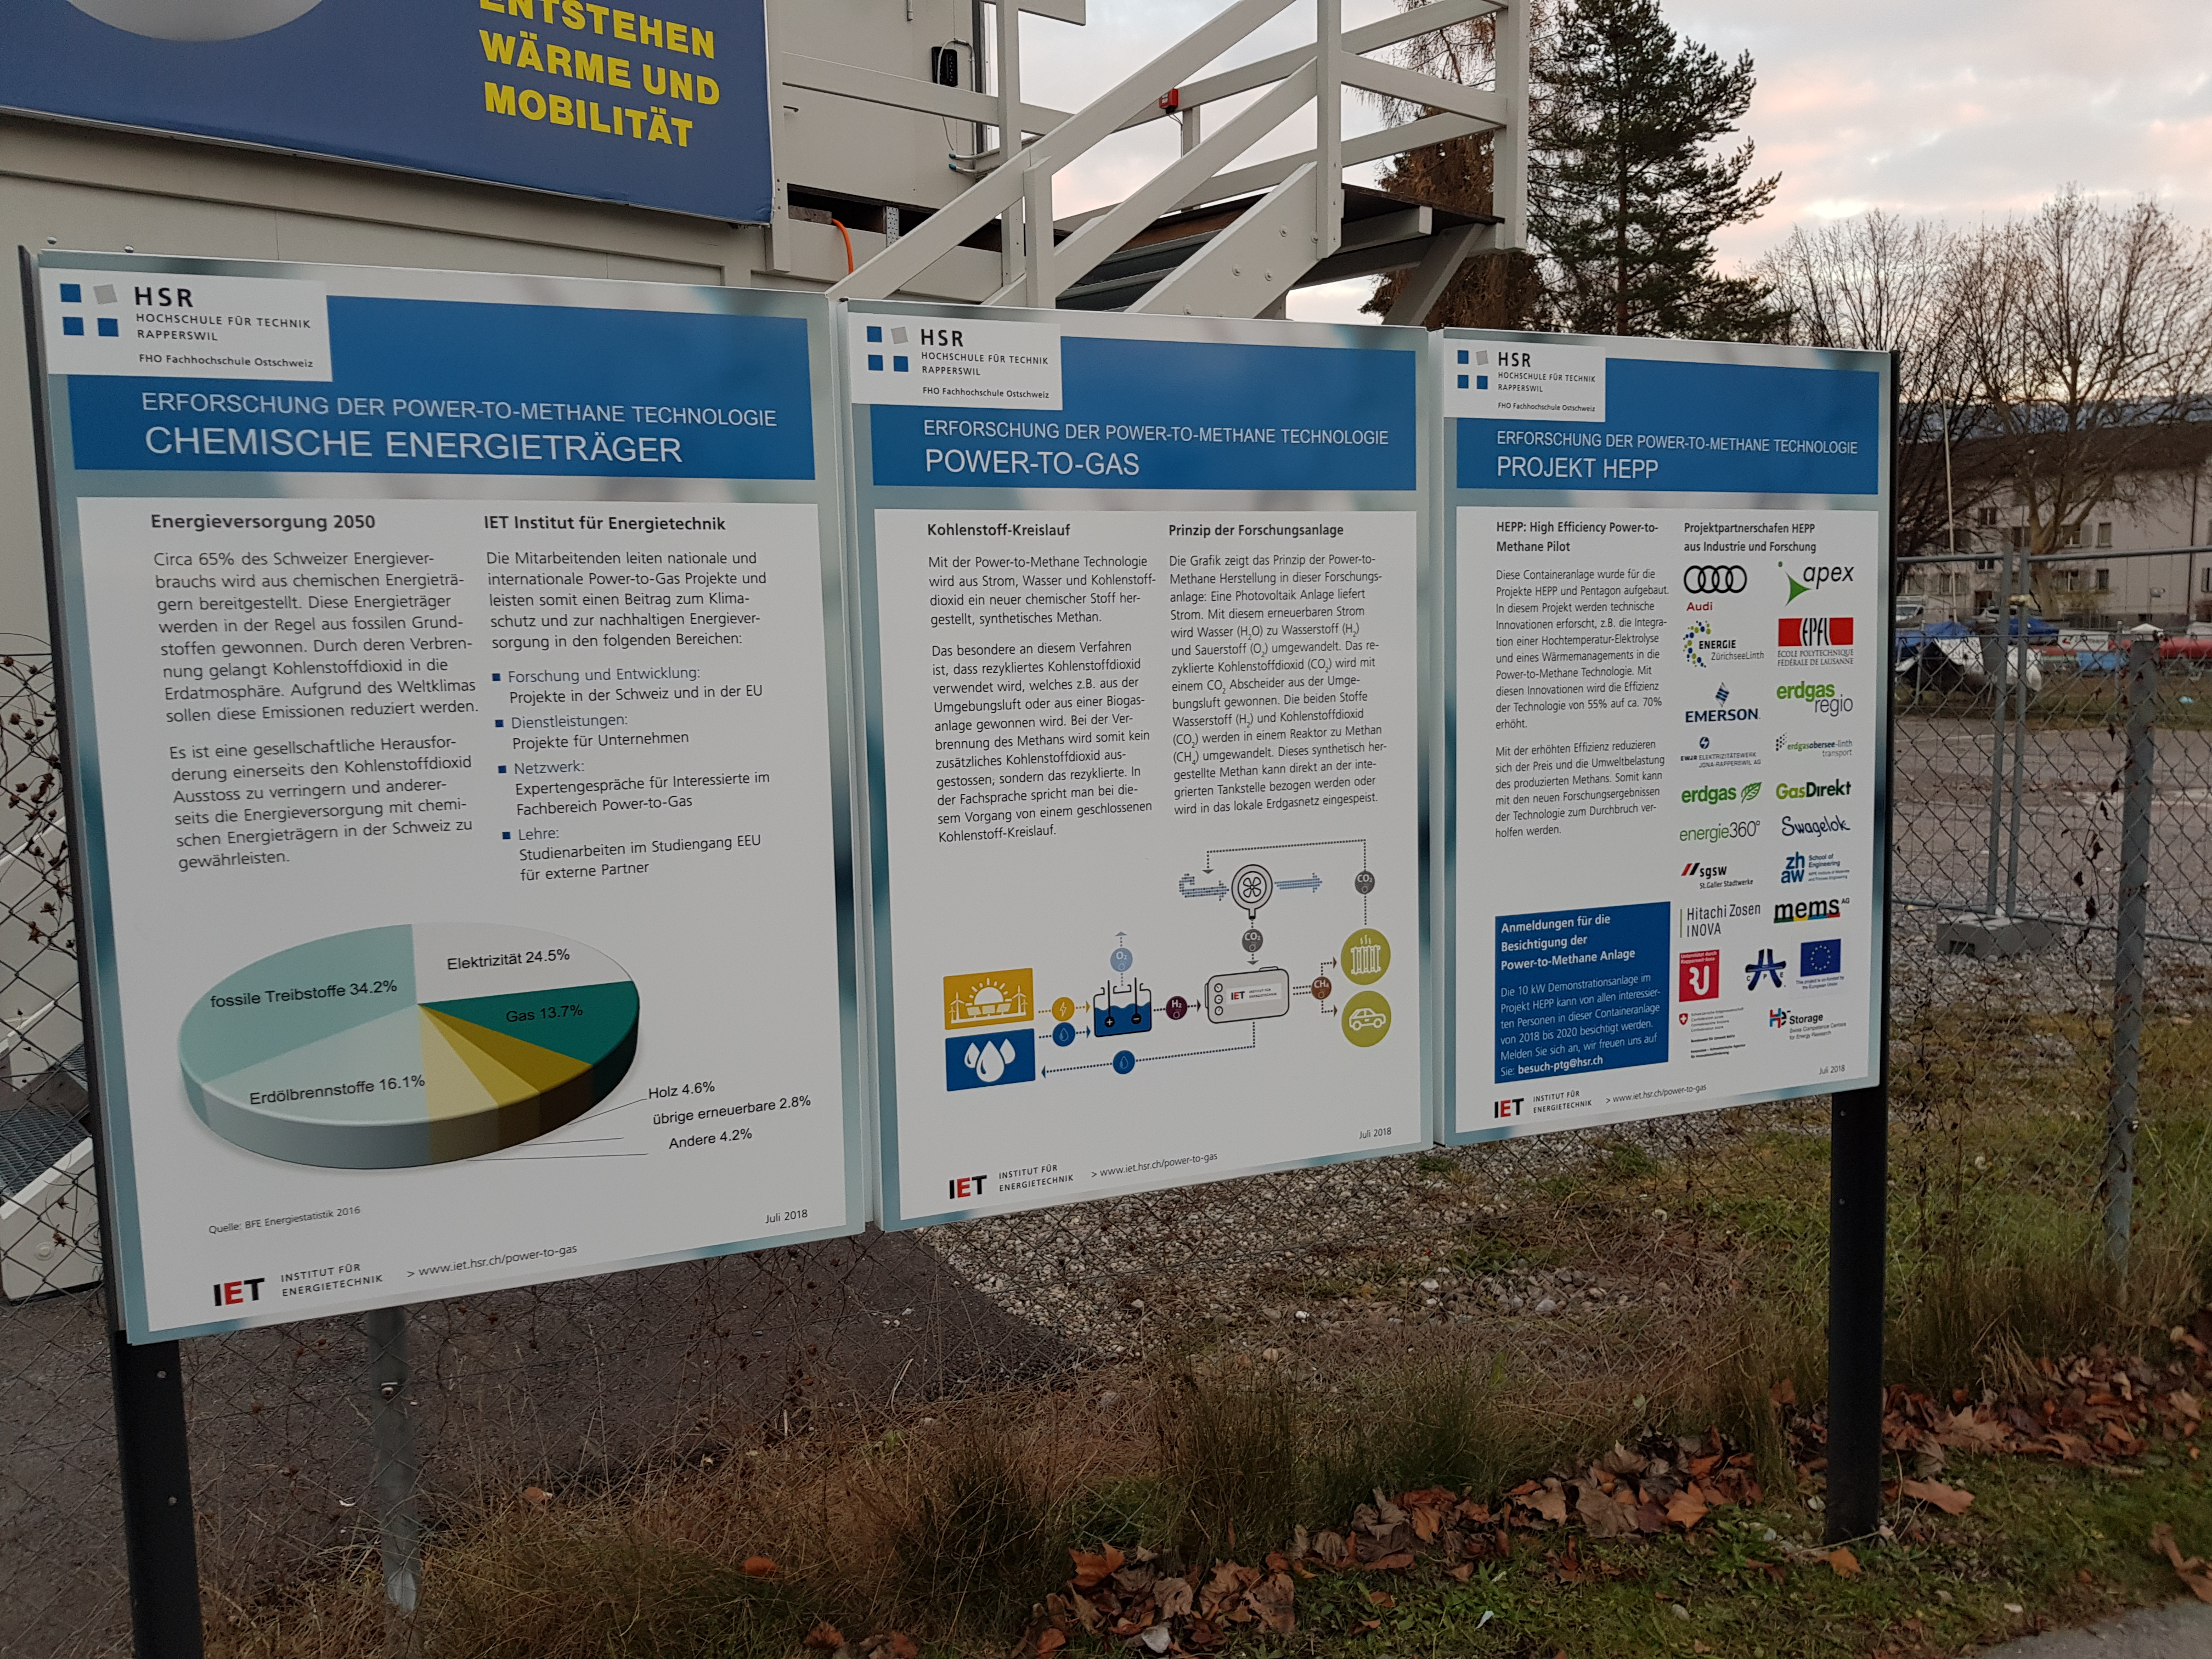 Information board at the power-to-gas engine